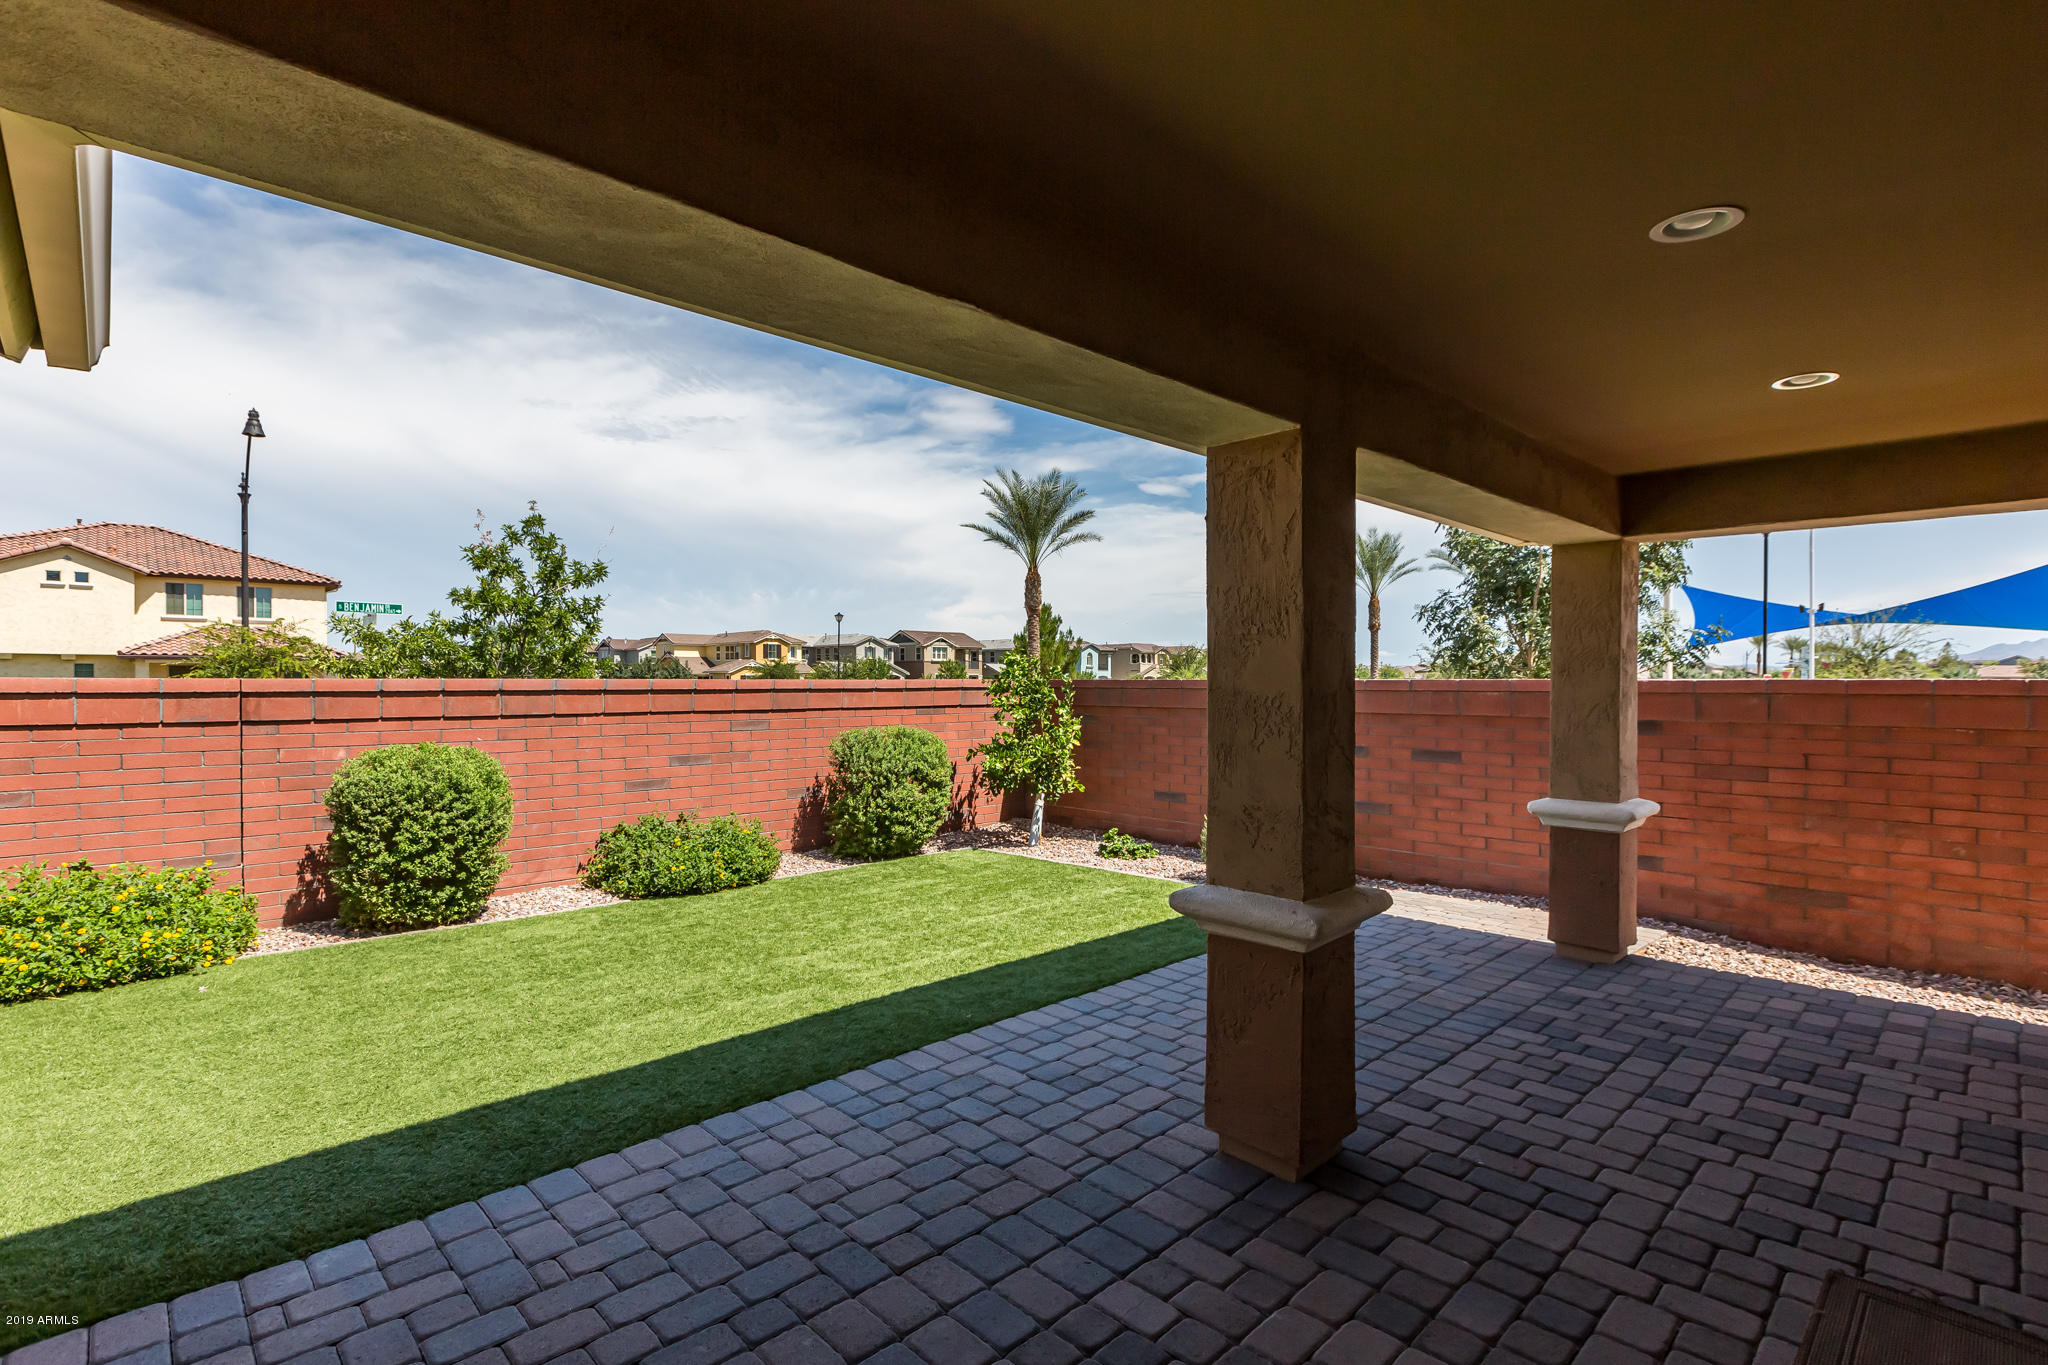 MLS 5959931 2053 S OSBORN Lane, Gilbert, AZ 85295 Gilbert AZ Cooley Station